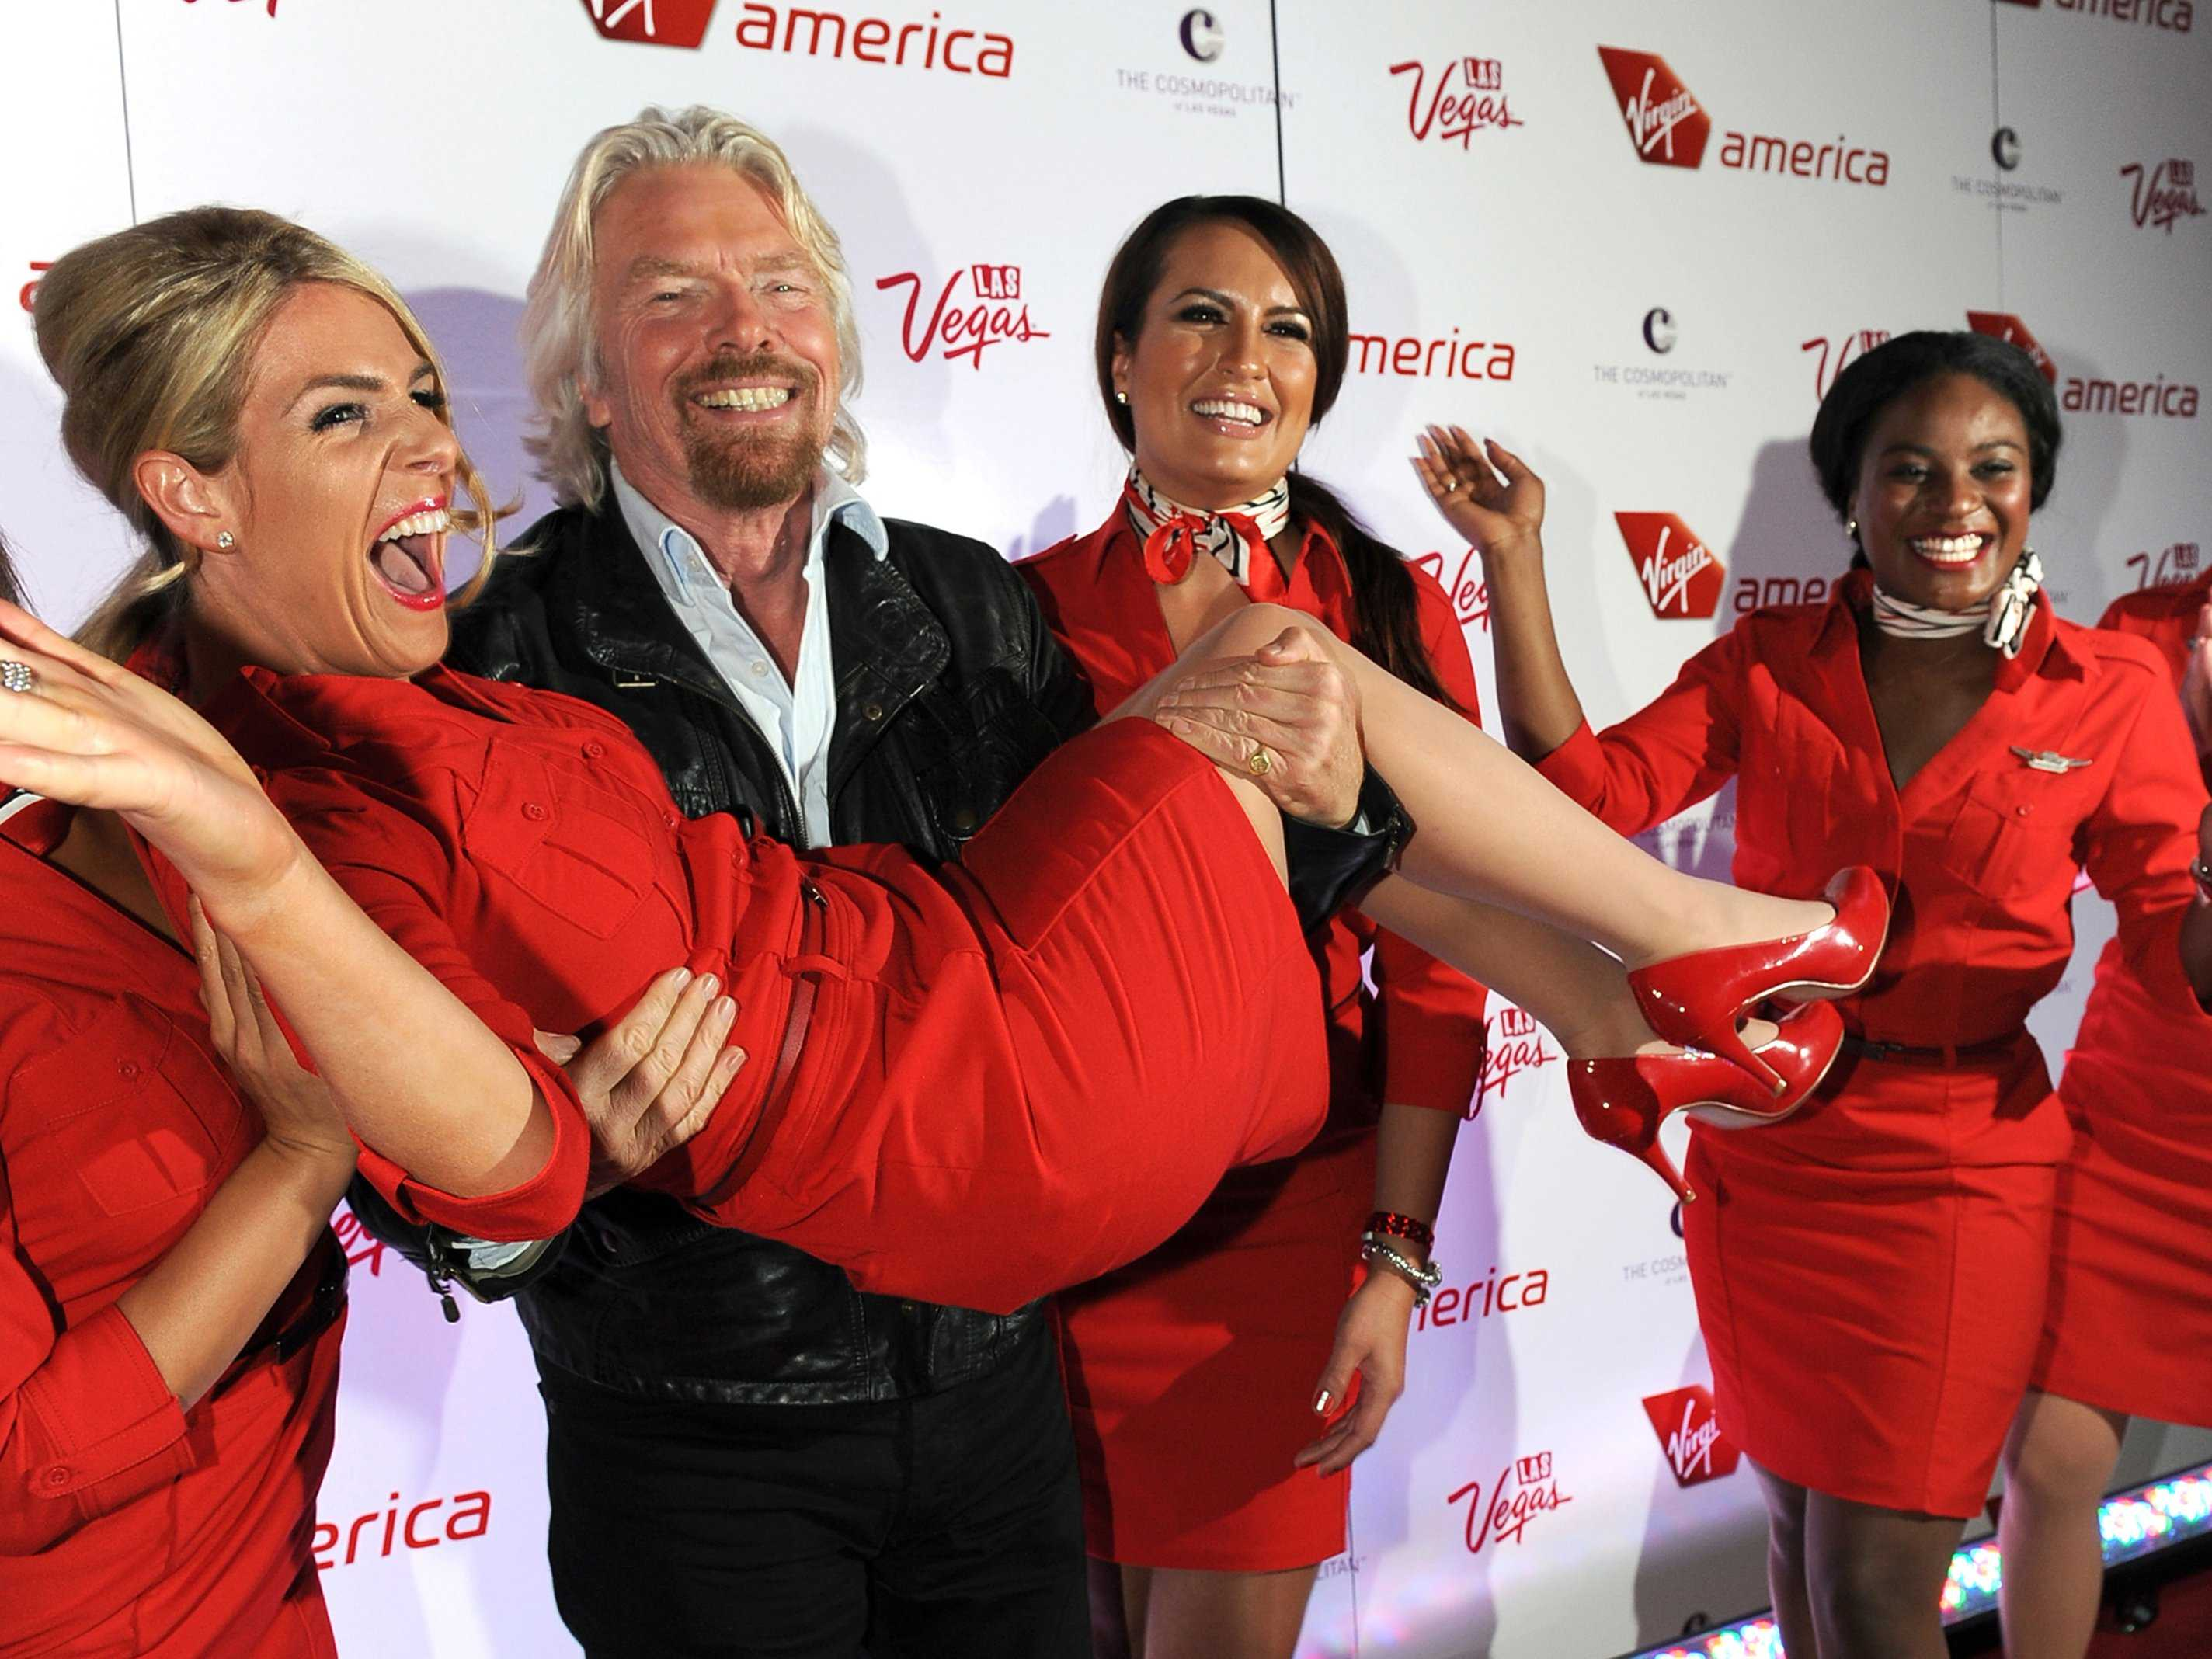 Richard Branson Goals